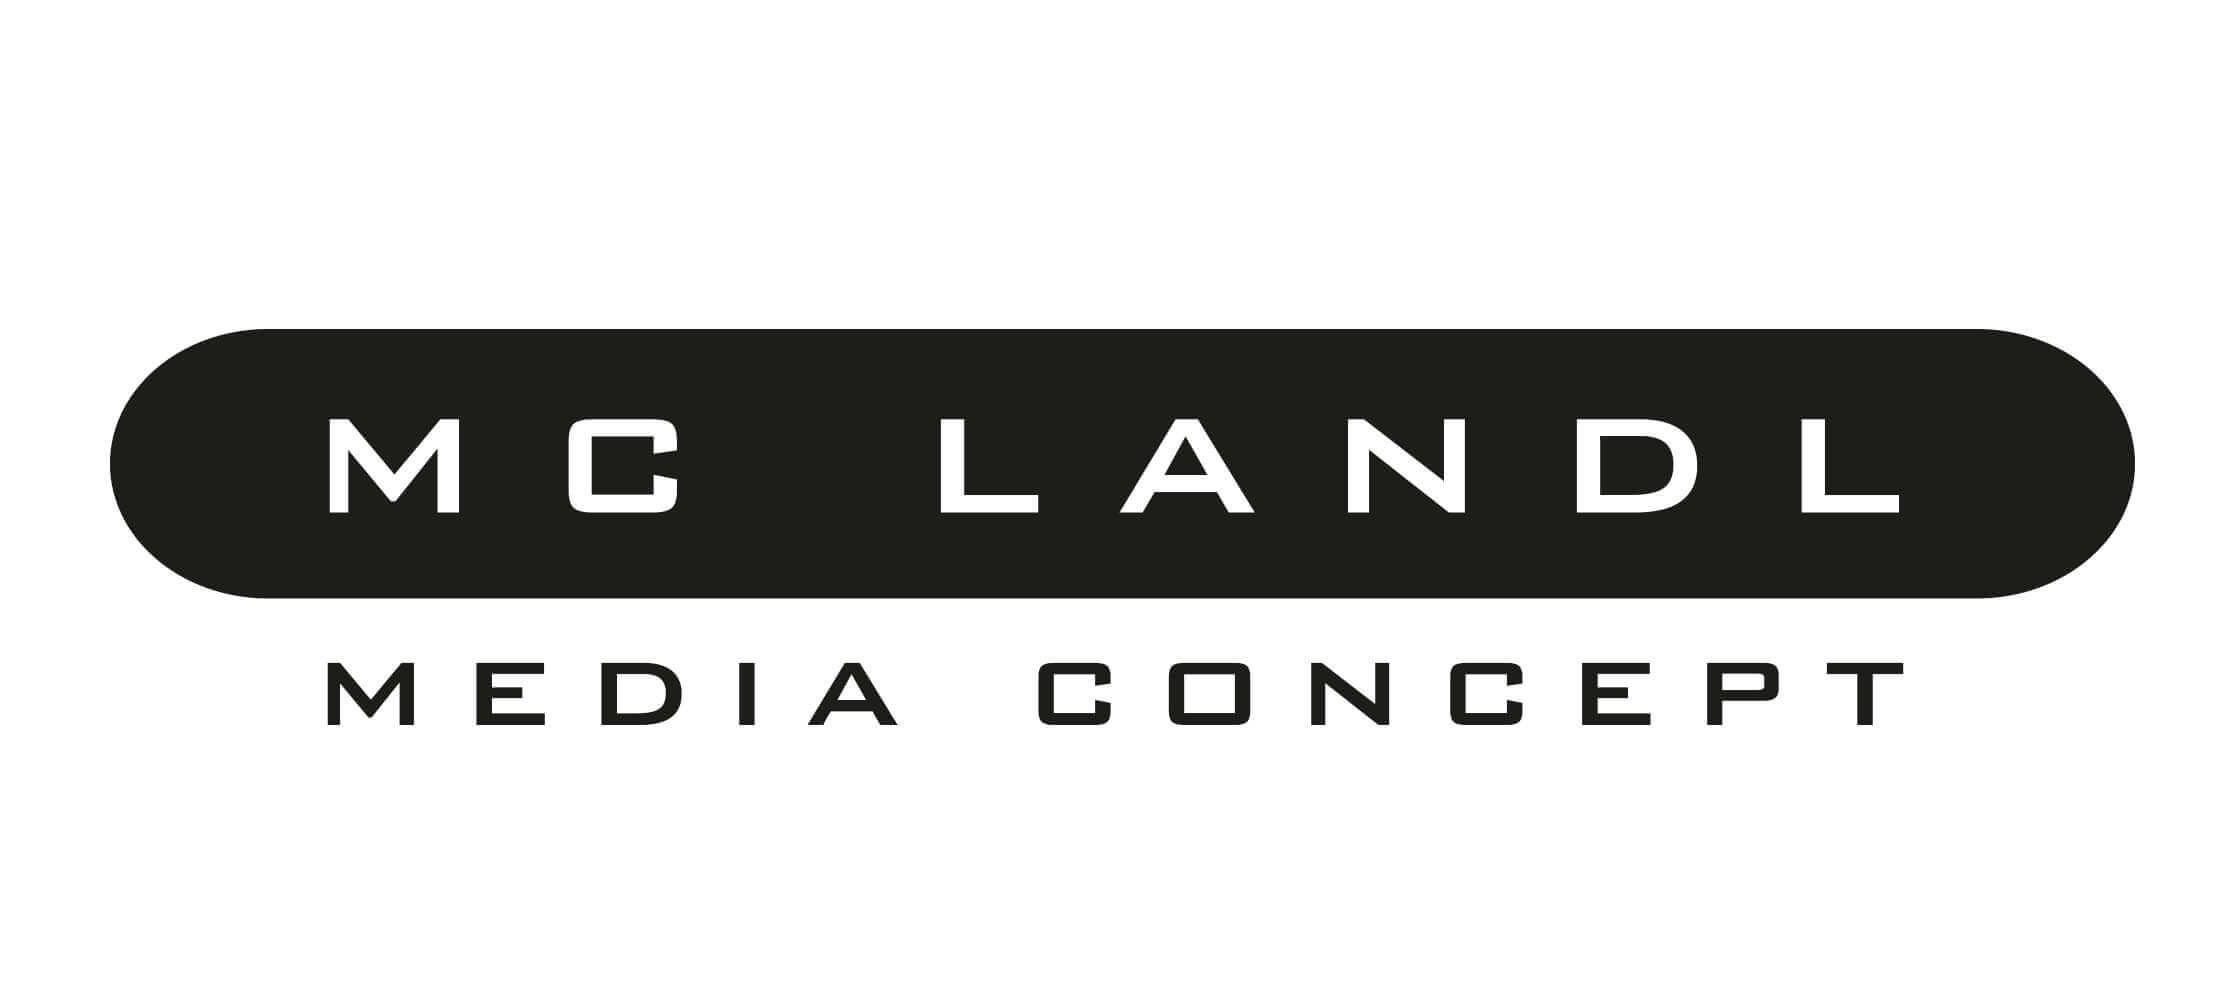 MC Landl Webe Marketingagentur